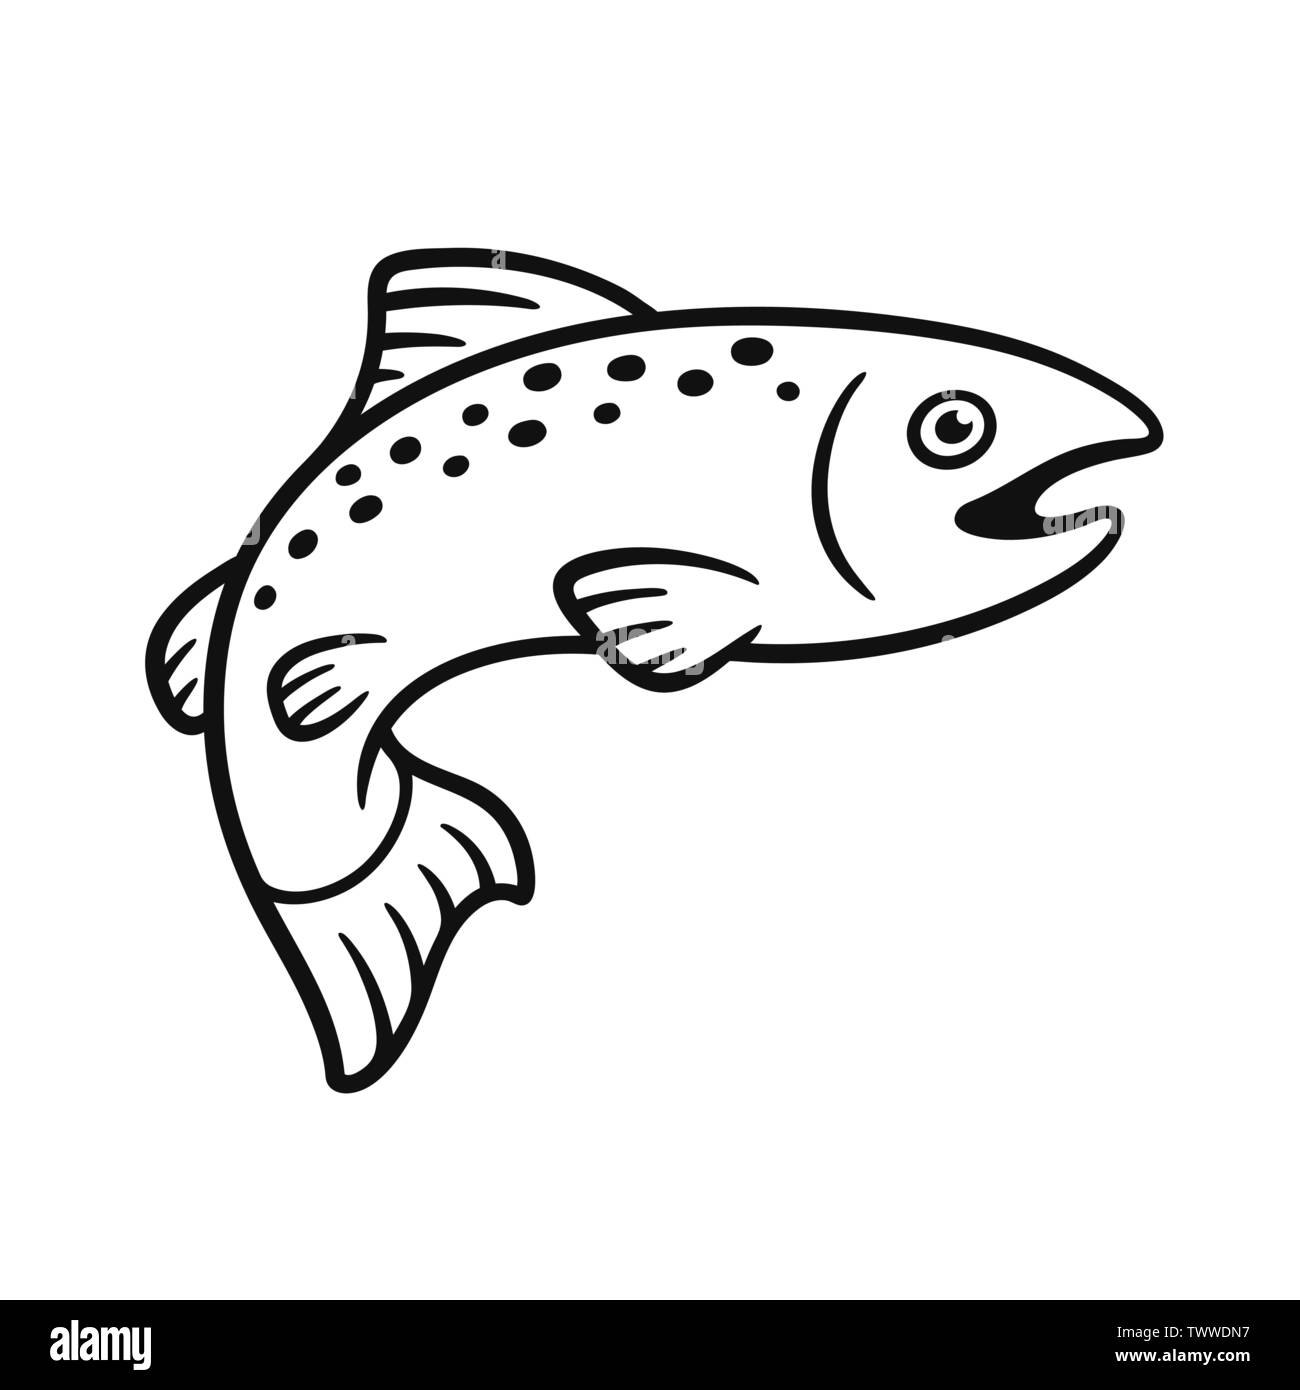 Black And White Salmon Drawing Simple Hand Drawn Fish Illustration Isolated Vector Clip Art Stock Vector Image Art Alamy